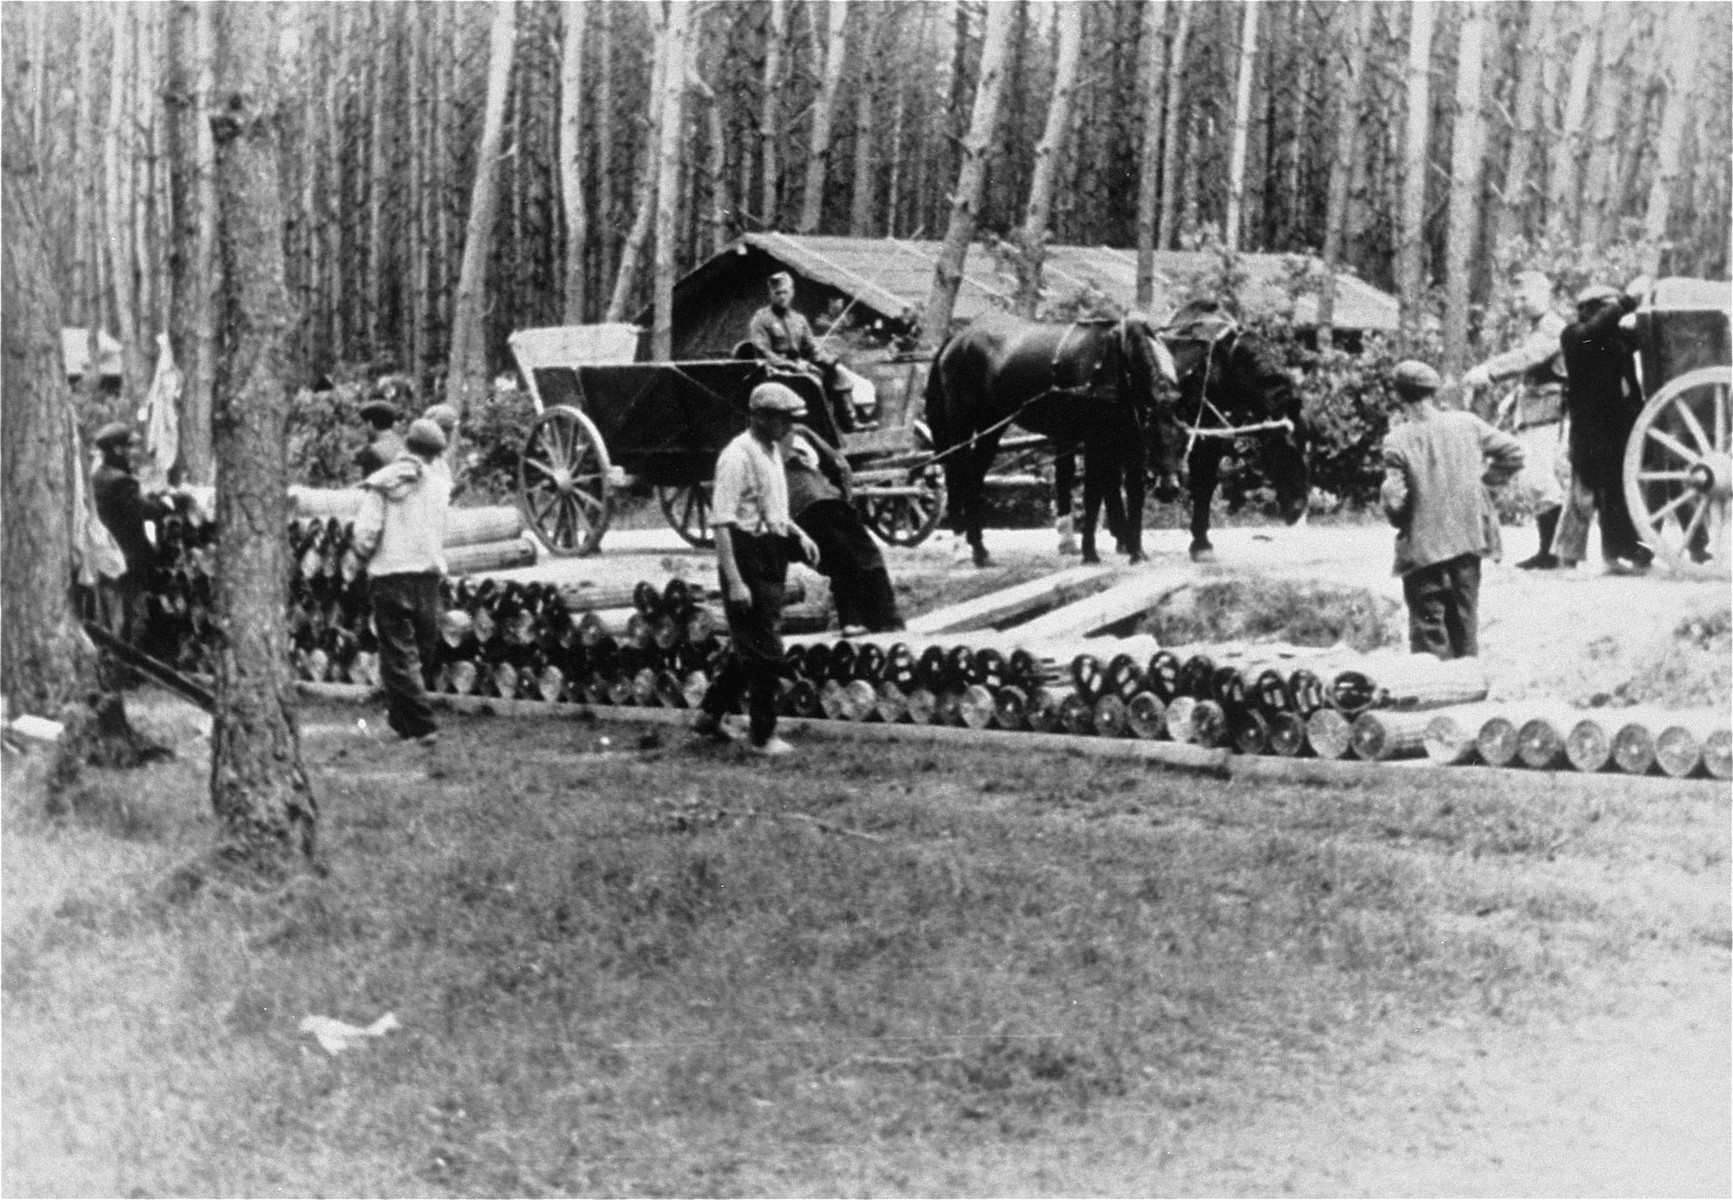 Jews at forced labor stacking artillary munitions.